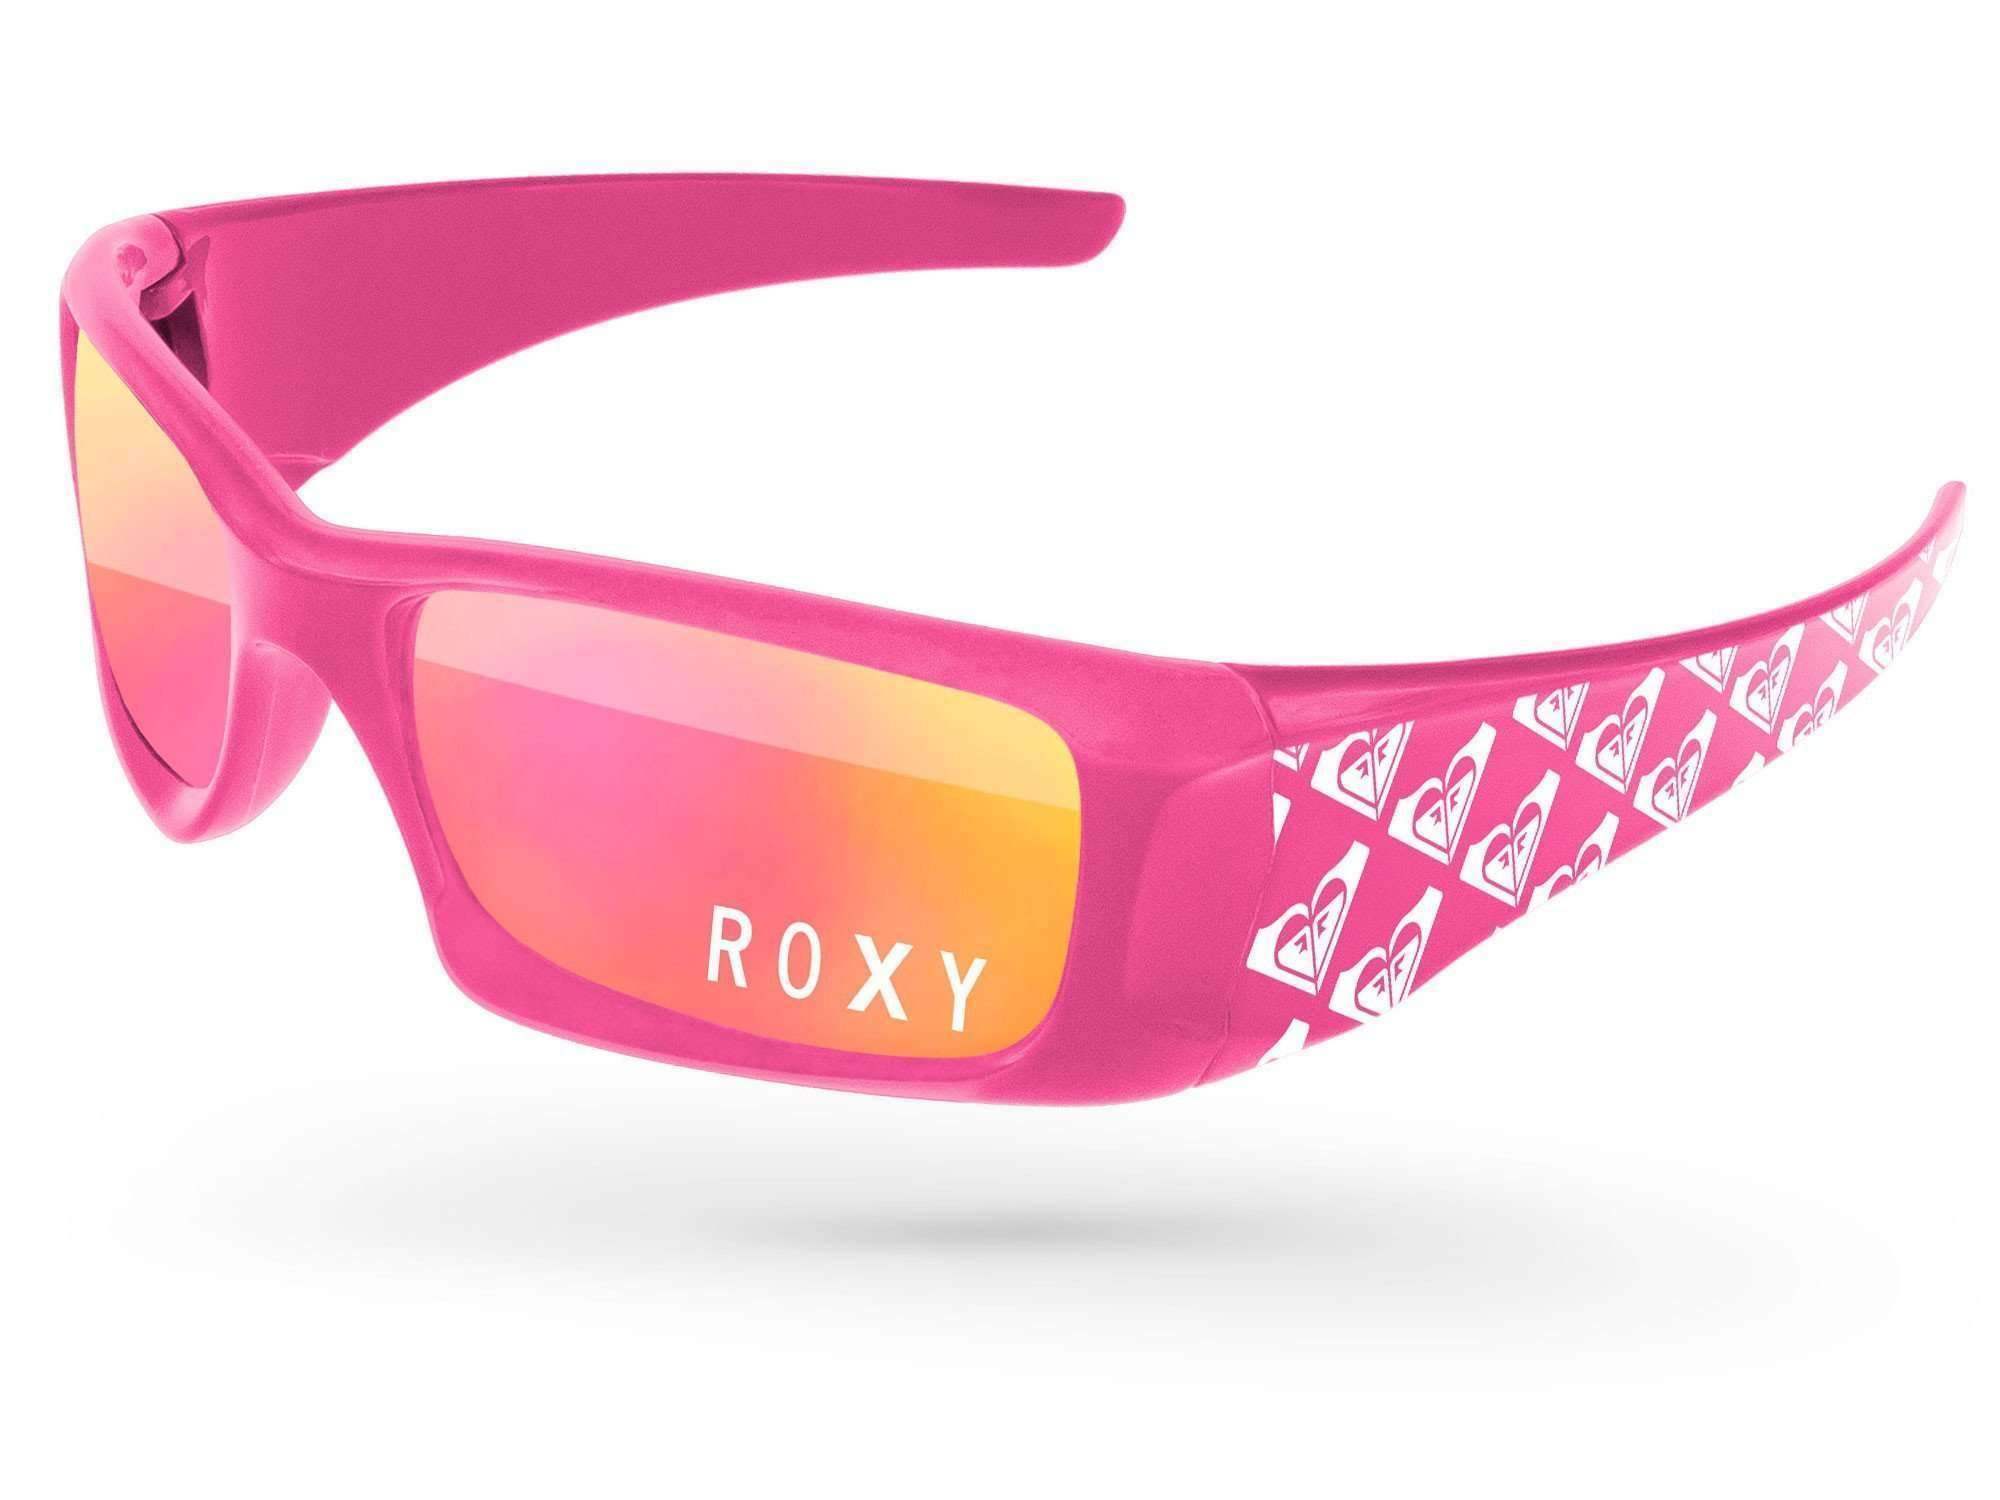 WM530 - Wrap Mirror Promotional Sunglasses w/ 1-color lens imprint & 1-color extended arms imprint